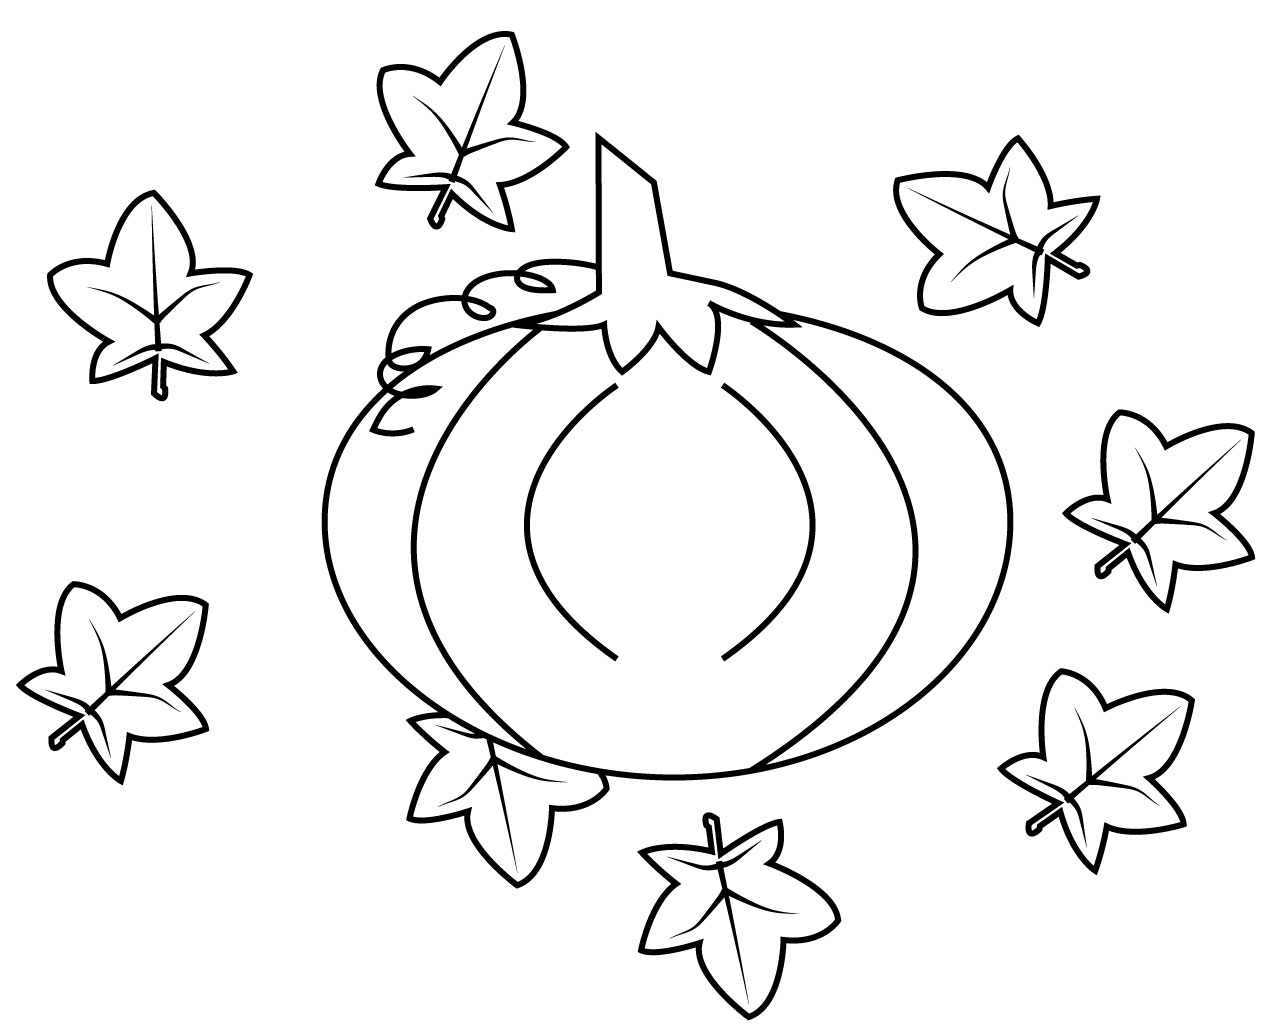 pumpkin and leaves coloring pages pumpkin leaves drawing free download on clipartmag and pumpkin coloring leaves pages